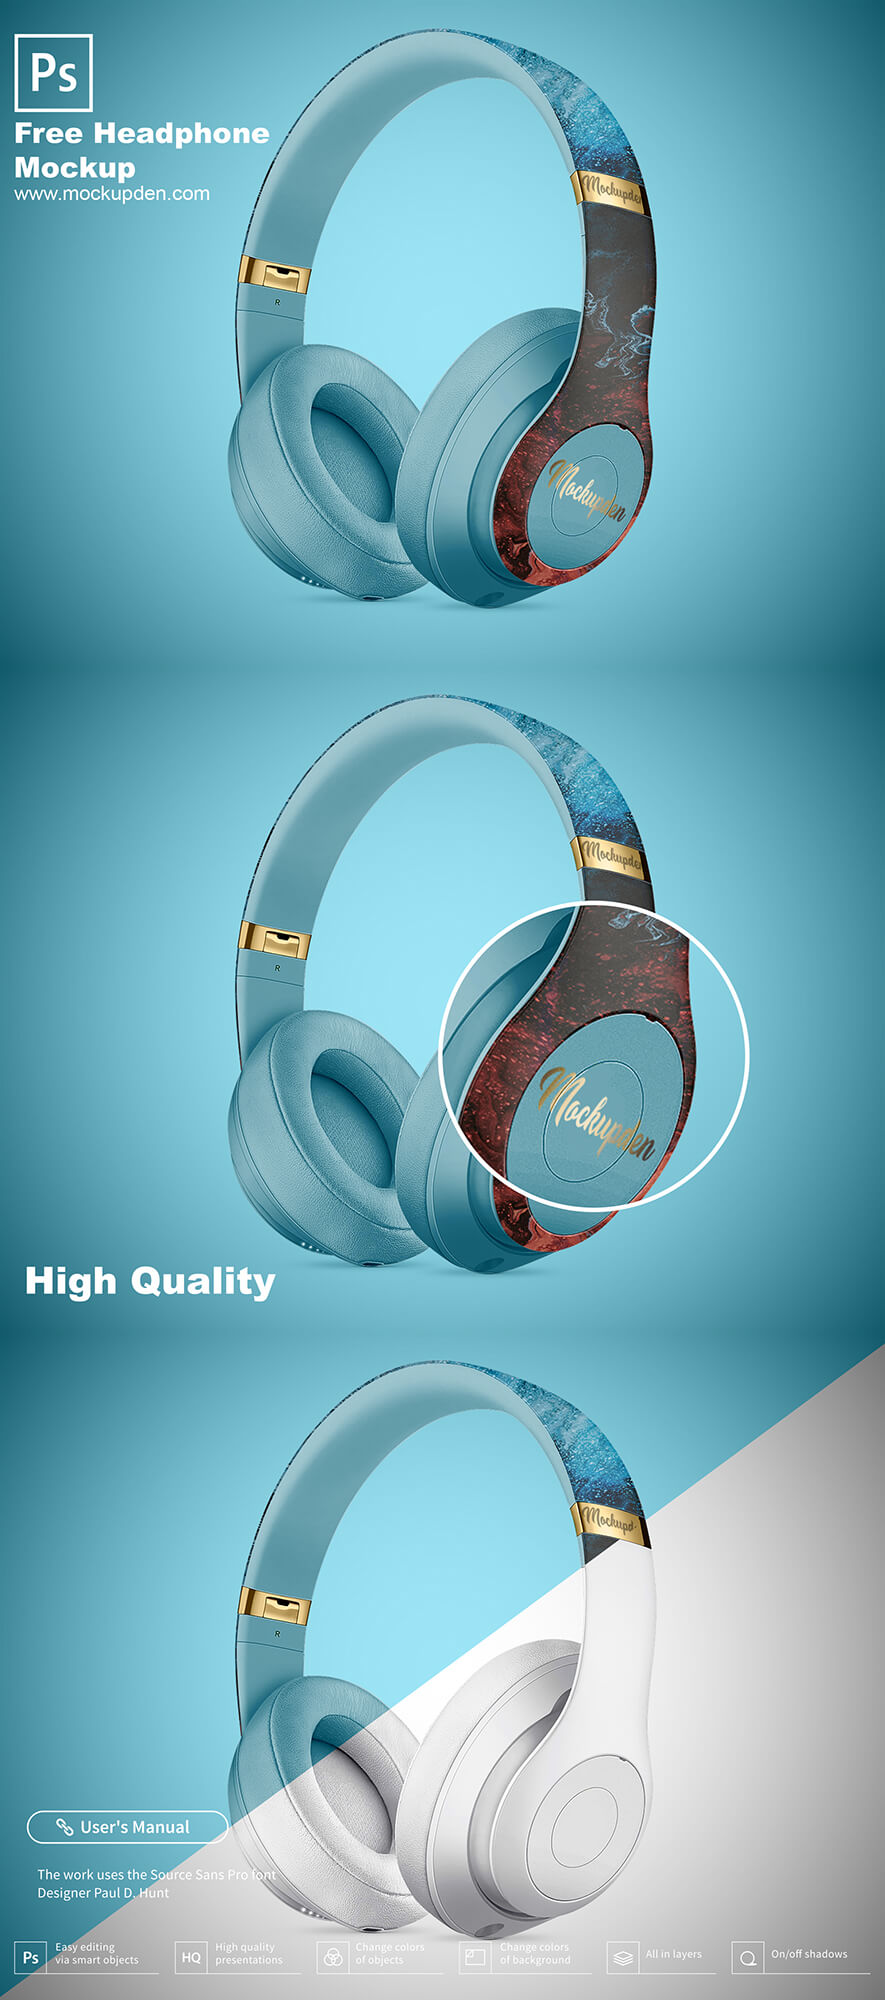 Free Headphone Mockup PSD Template